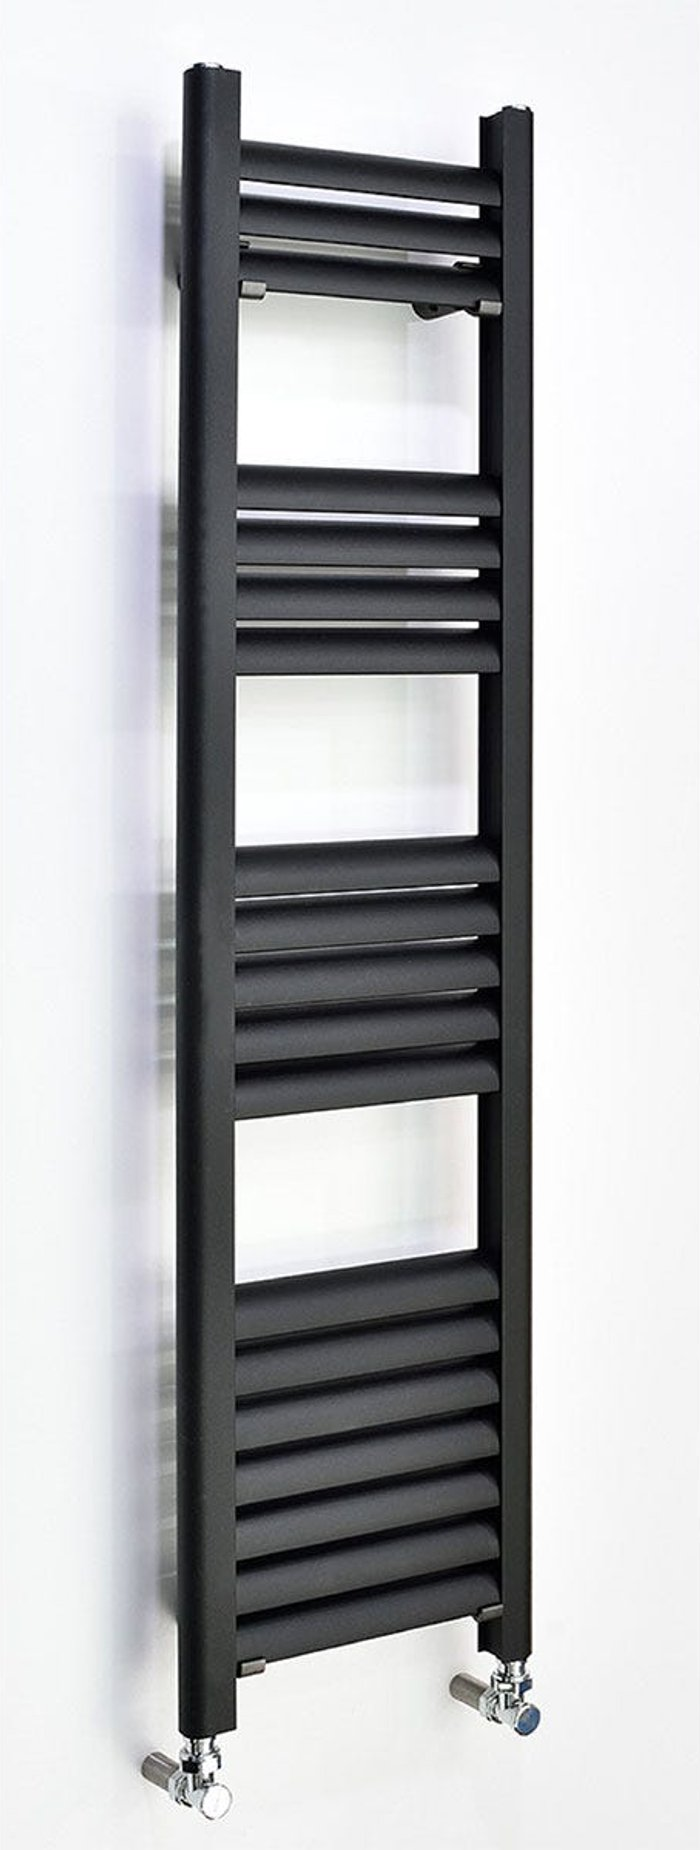 Towelrads Towelrads Accuro Korle Champagne 1400mm x 300mm Aluminium T/Warmer - Anthracite